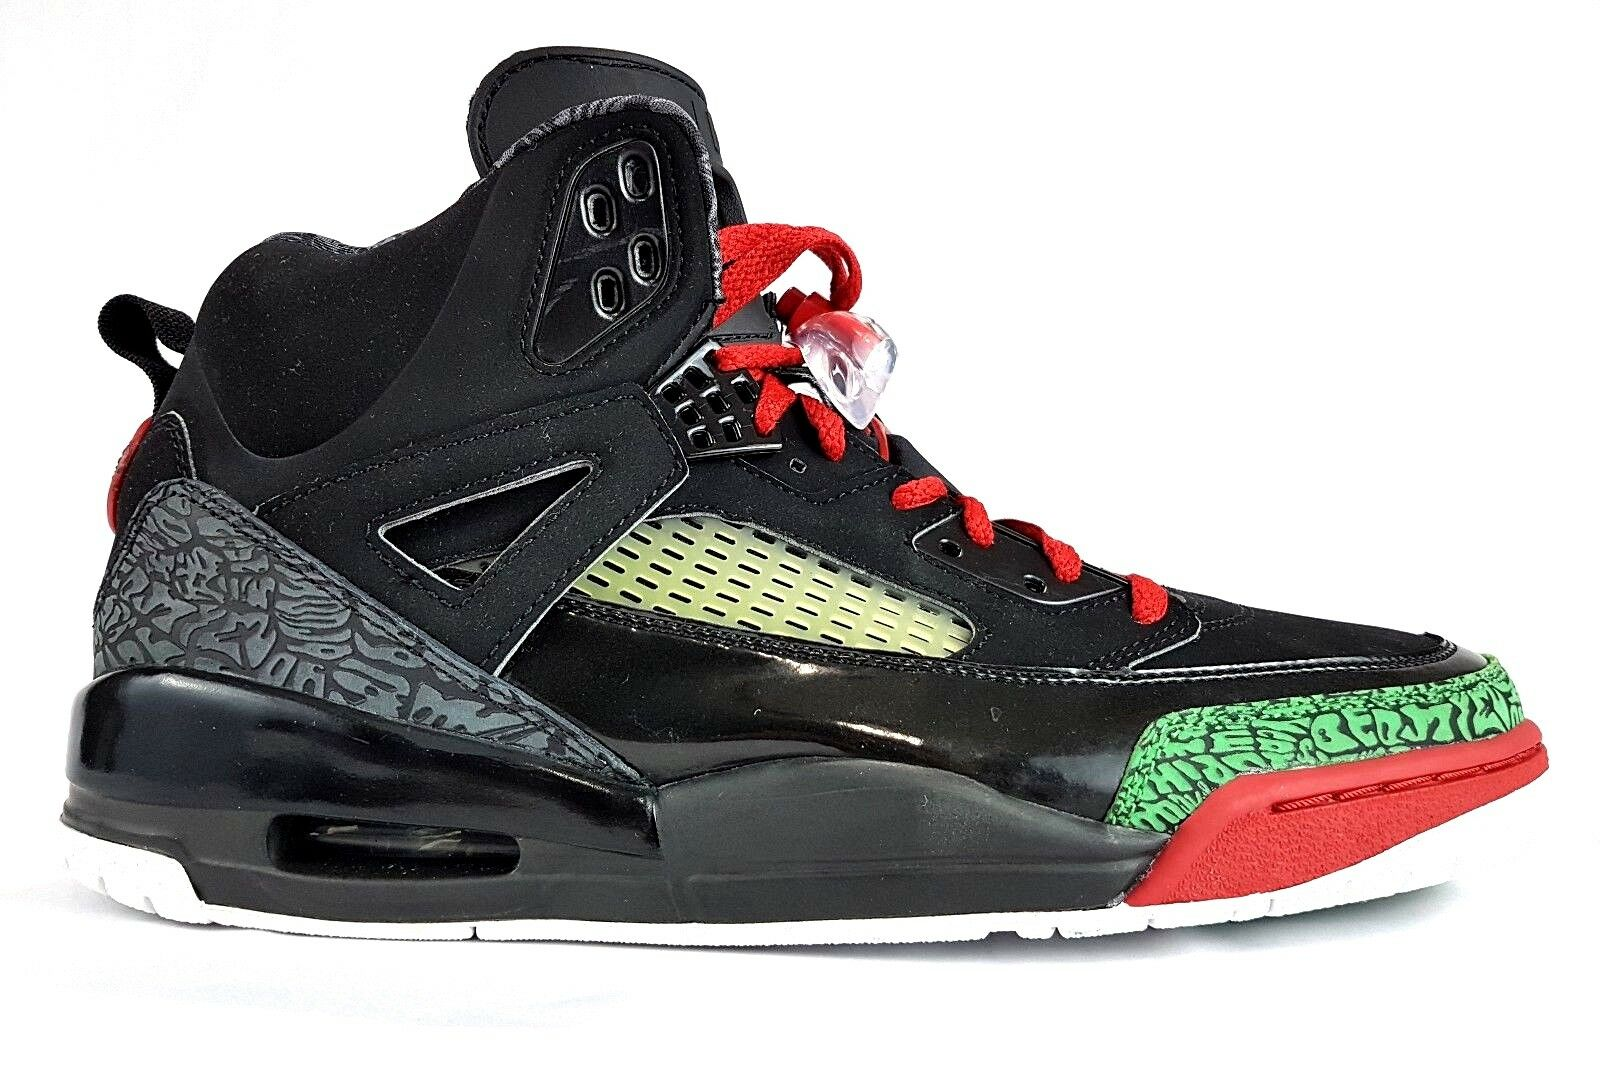 NIKE 07 AIR JORDAN SPIZIKE OG BLACK RED GREEN 11.5 DS I III IV V VI VIII XI XII